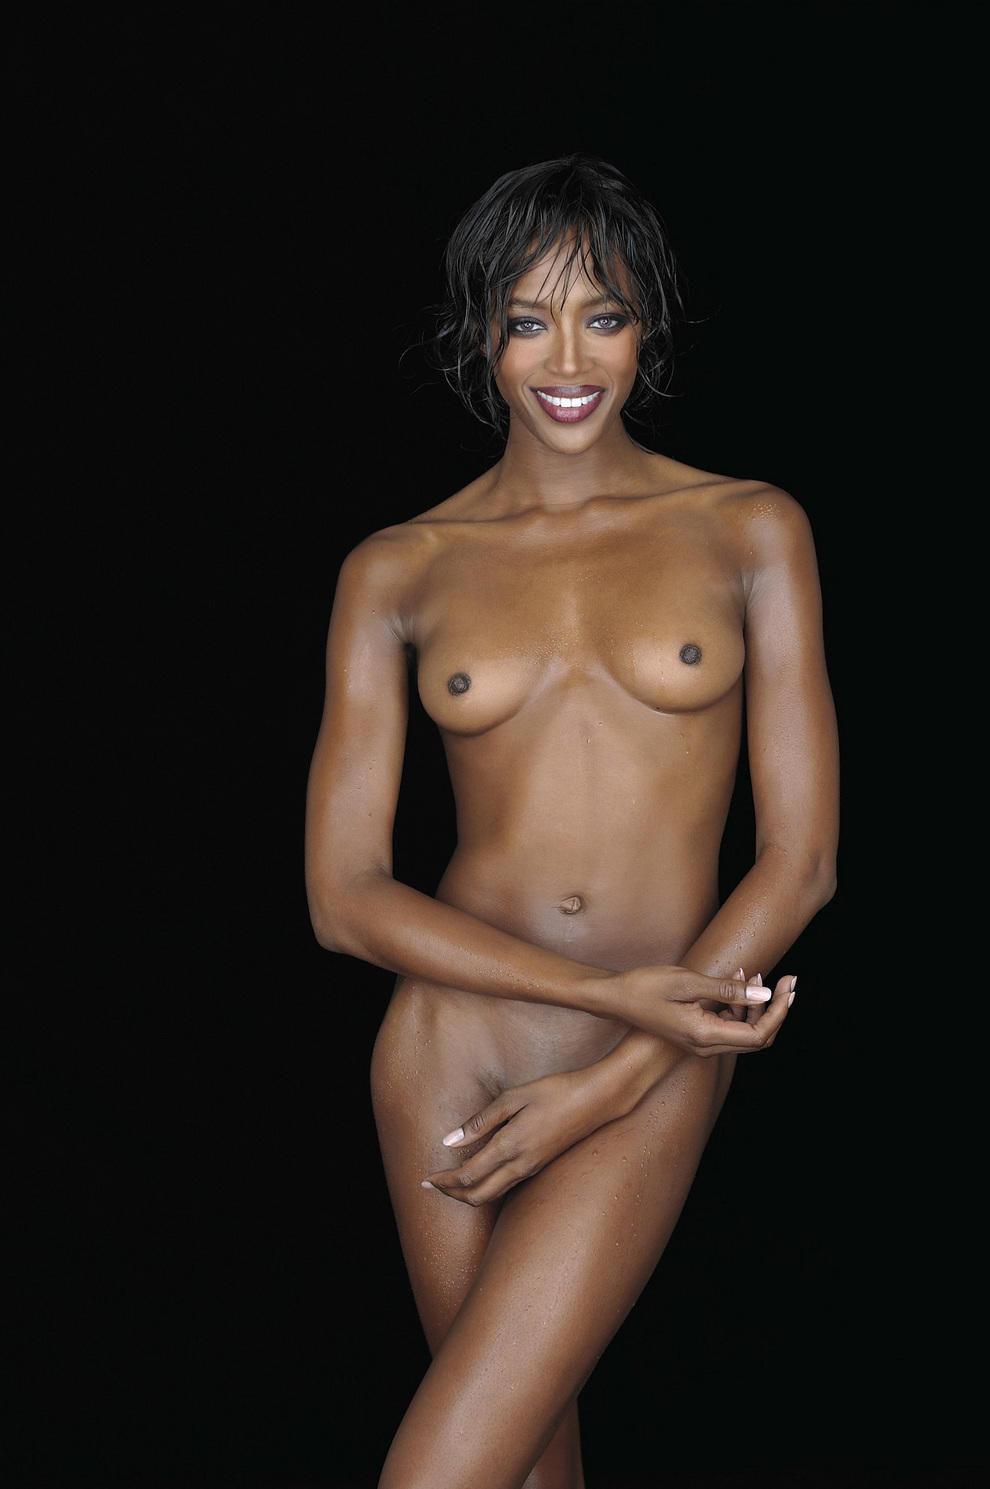 naomi campbell wwe naked